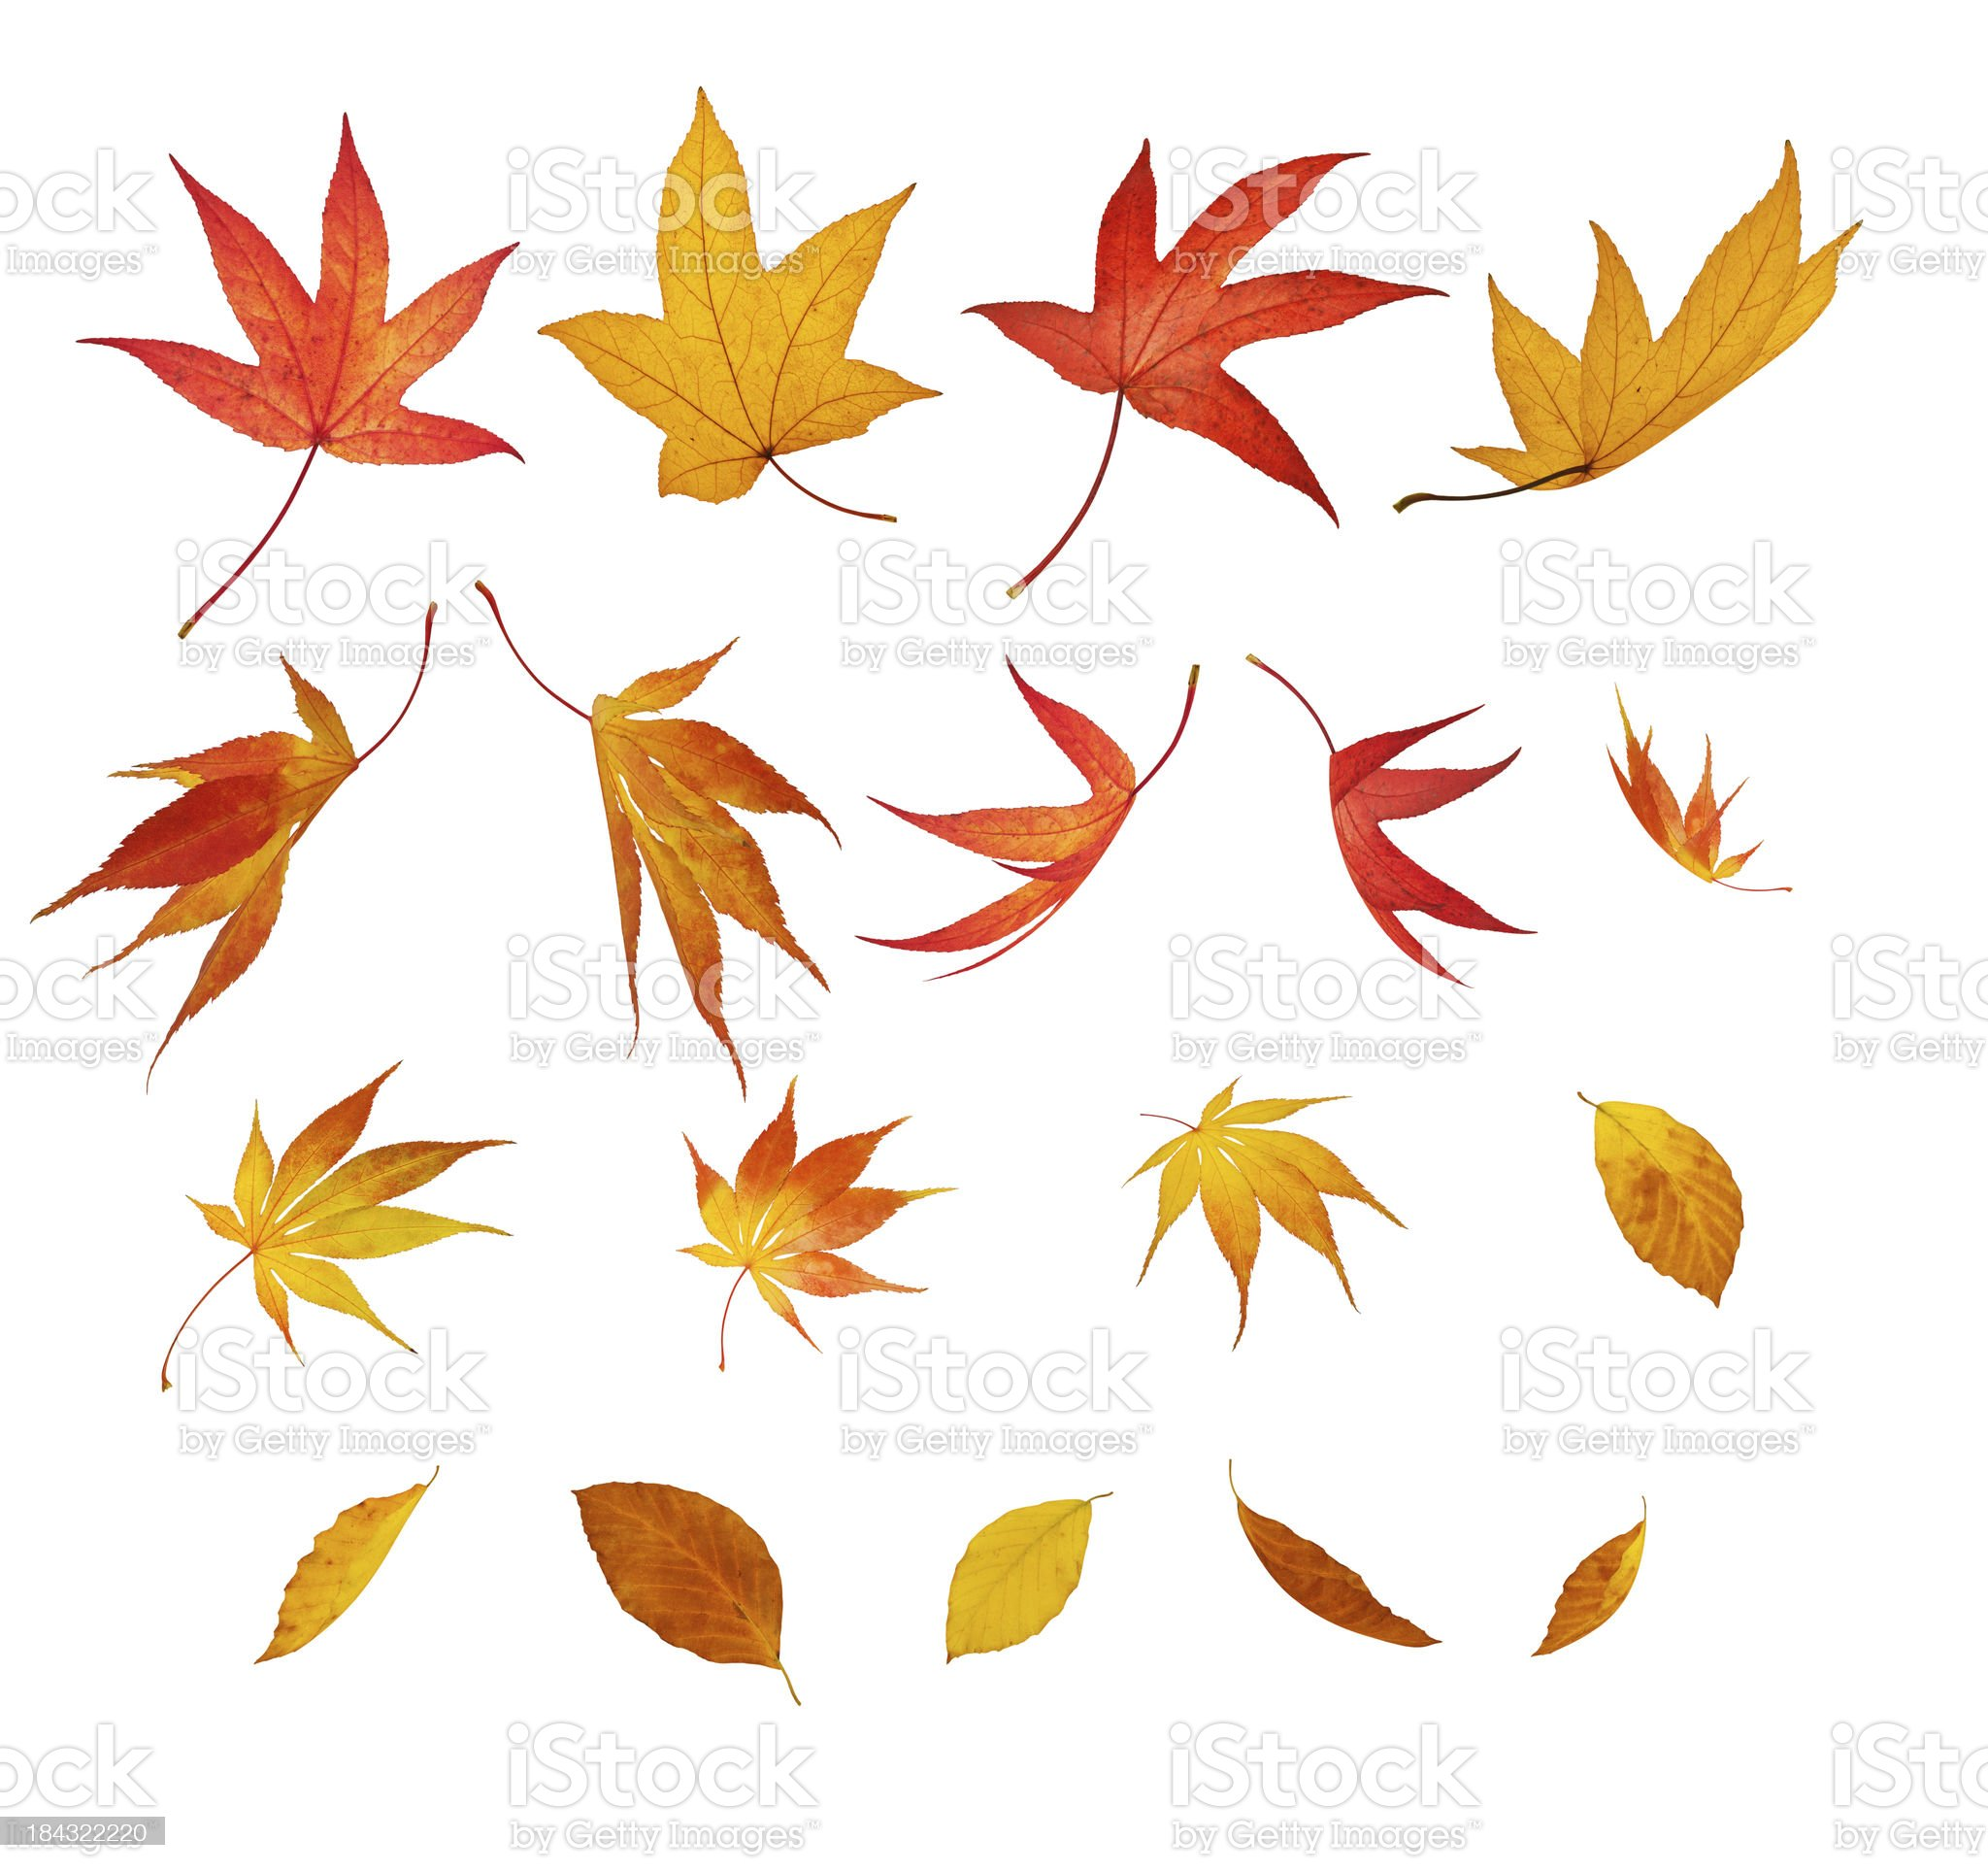 Isolated Falling Autumn Leaves royalty-free stock photo